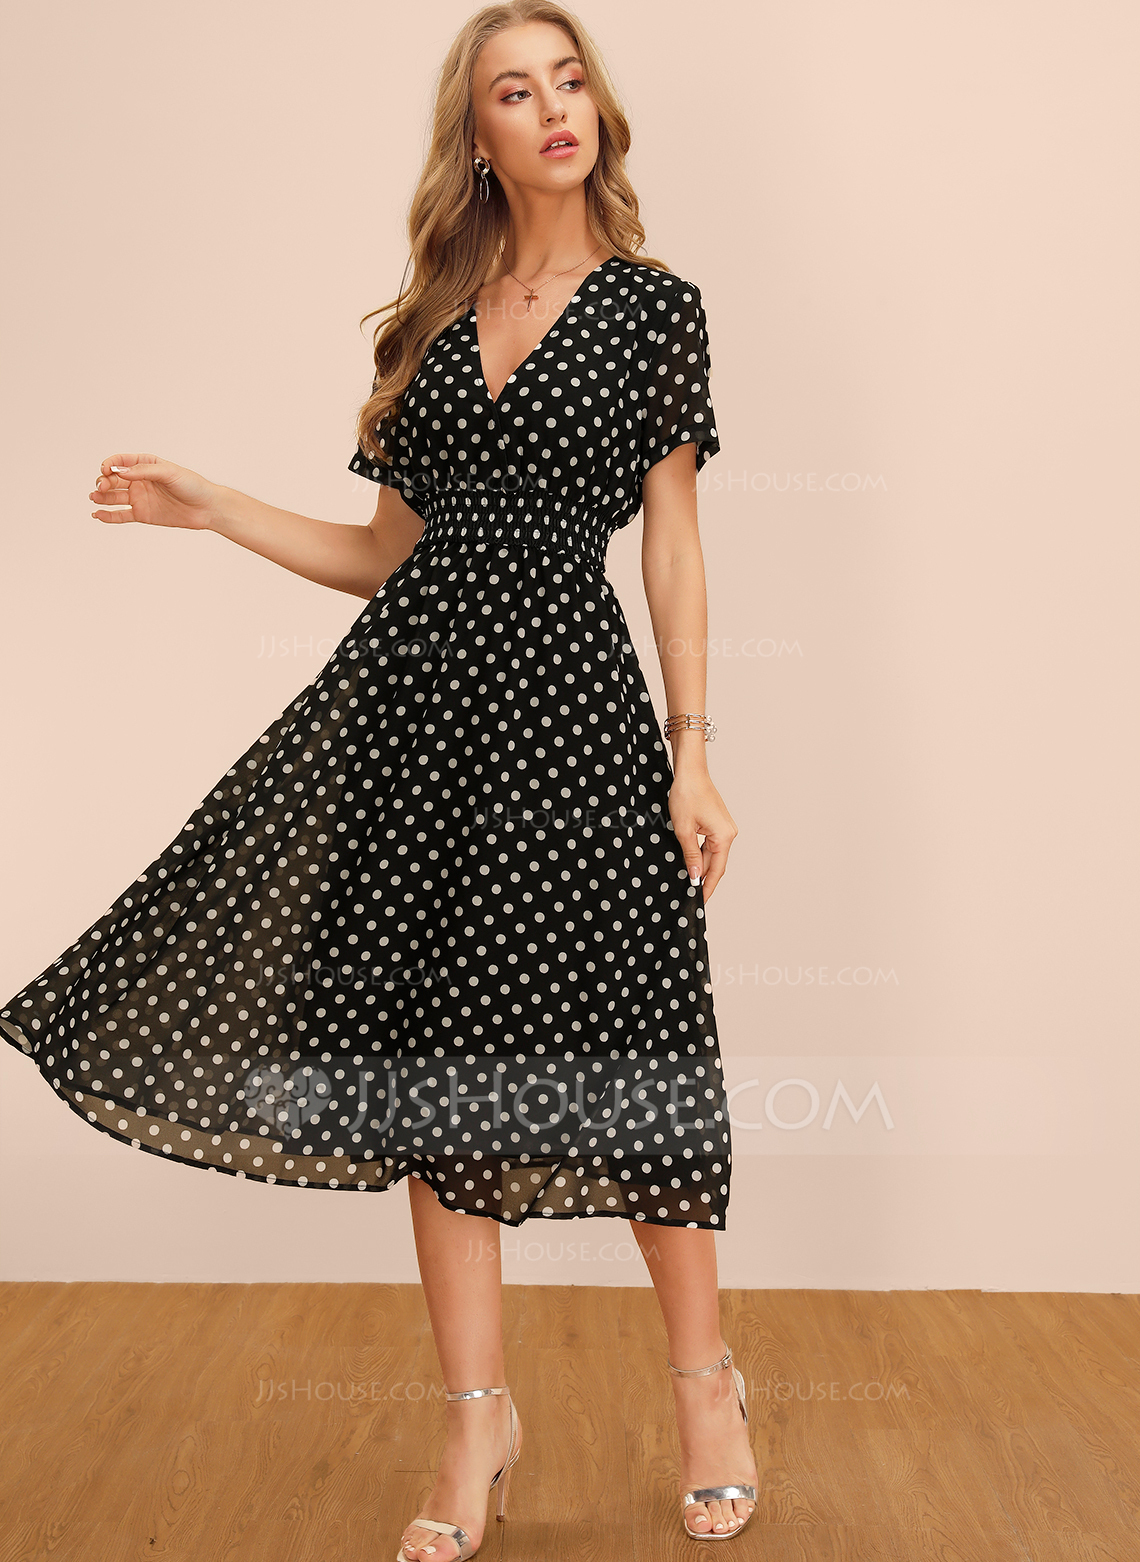 Polyester With PolkaDot Knee Length Dress